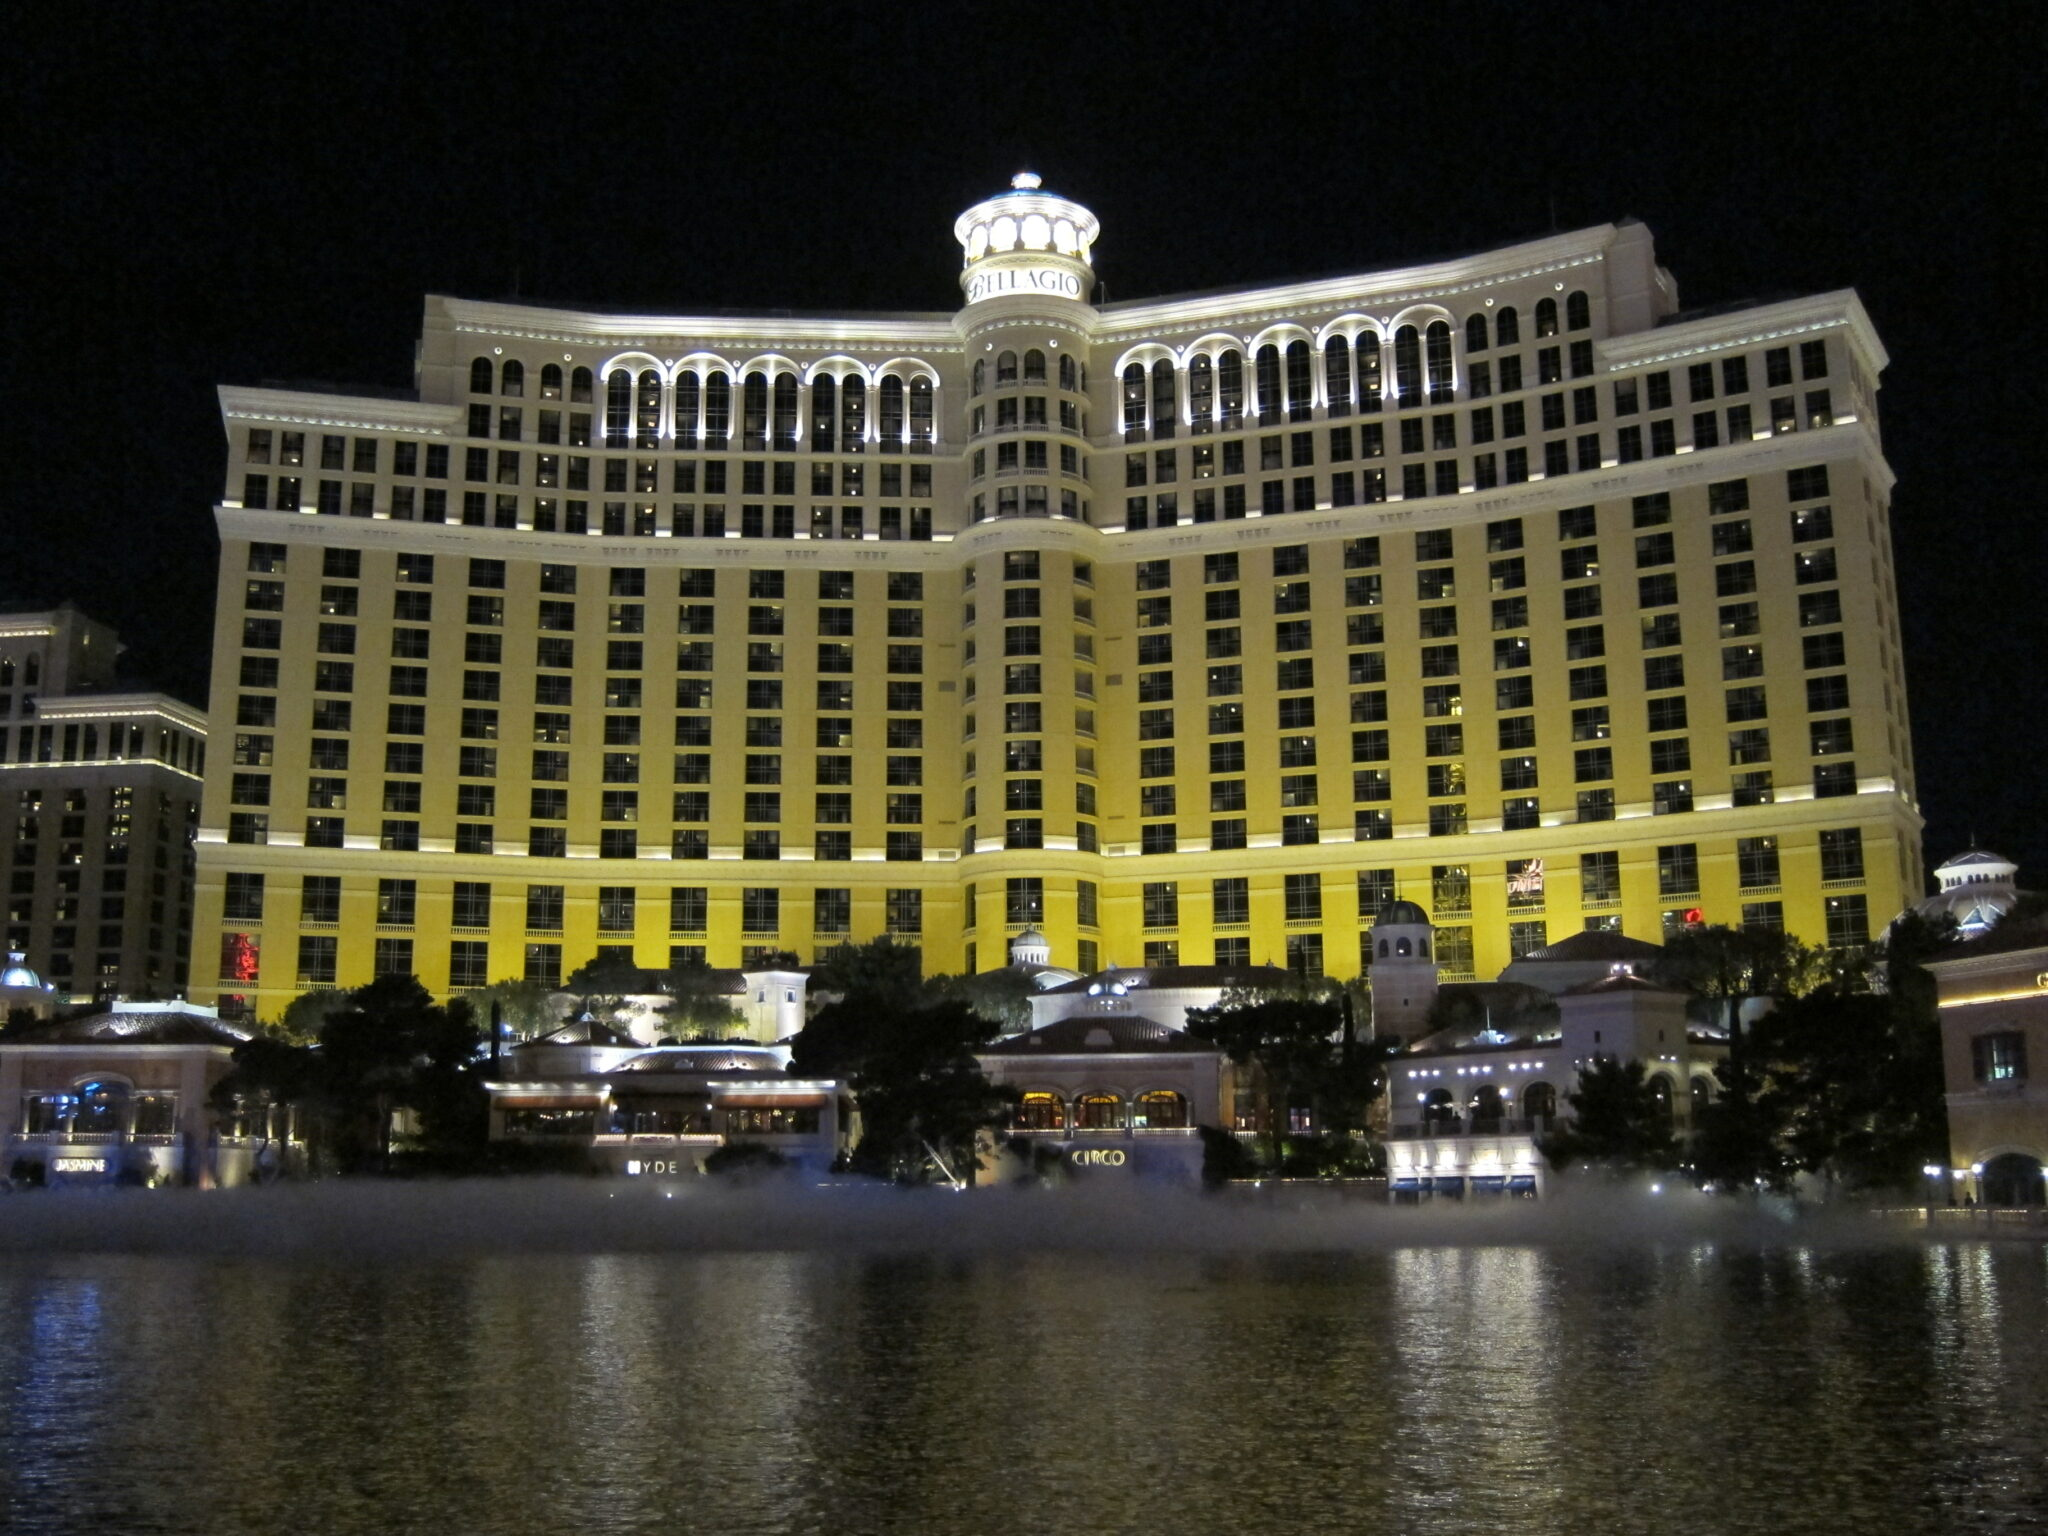 Bellagio Hotel, Las Vegas